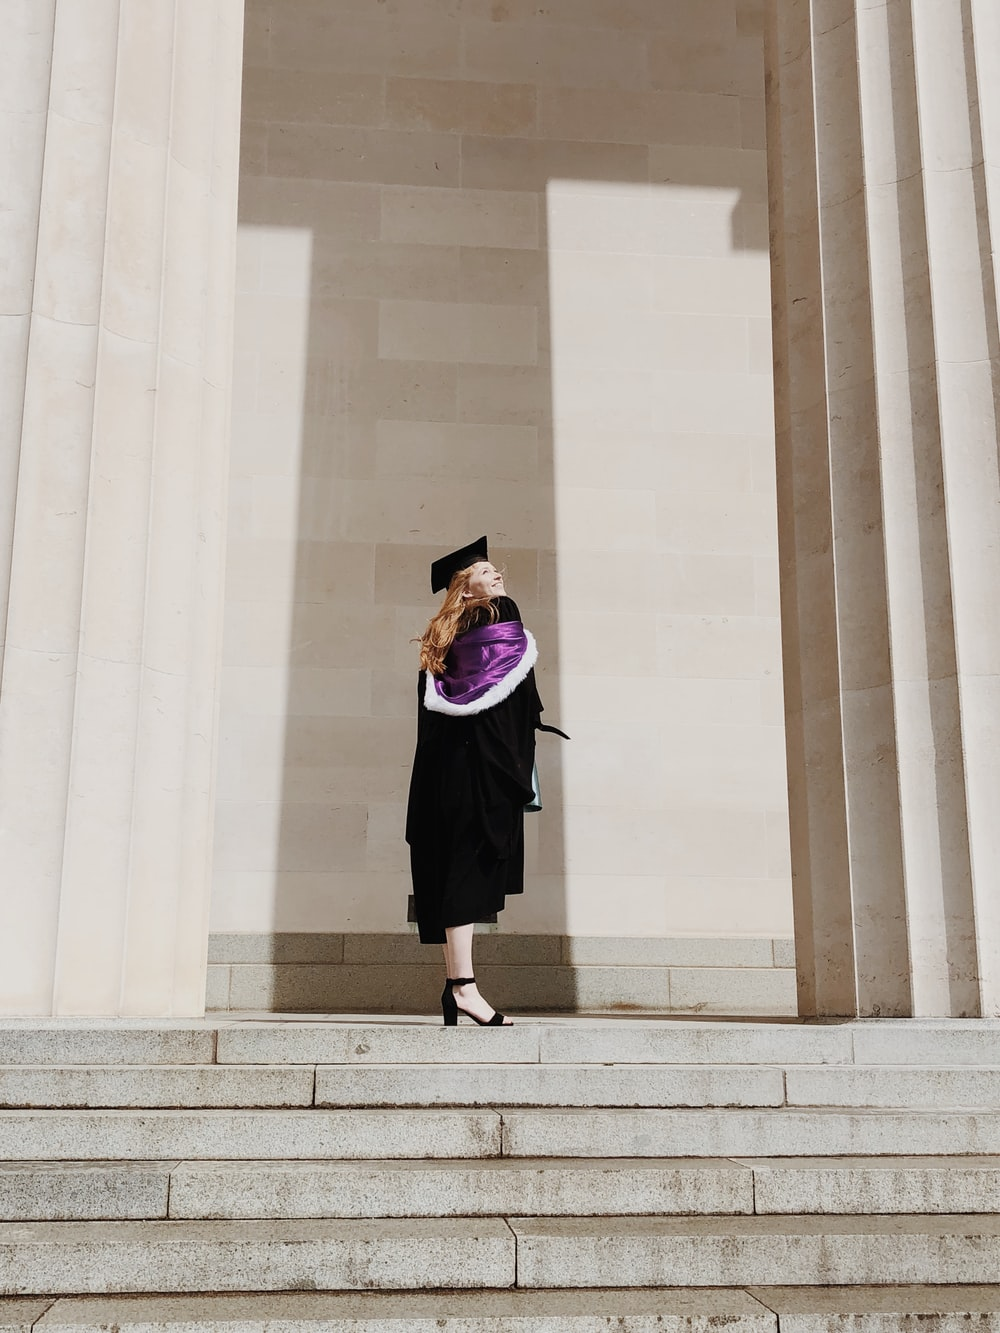 woman in academic regalia standing near concrete stairs